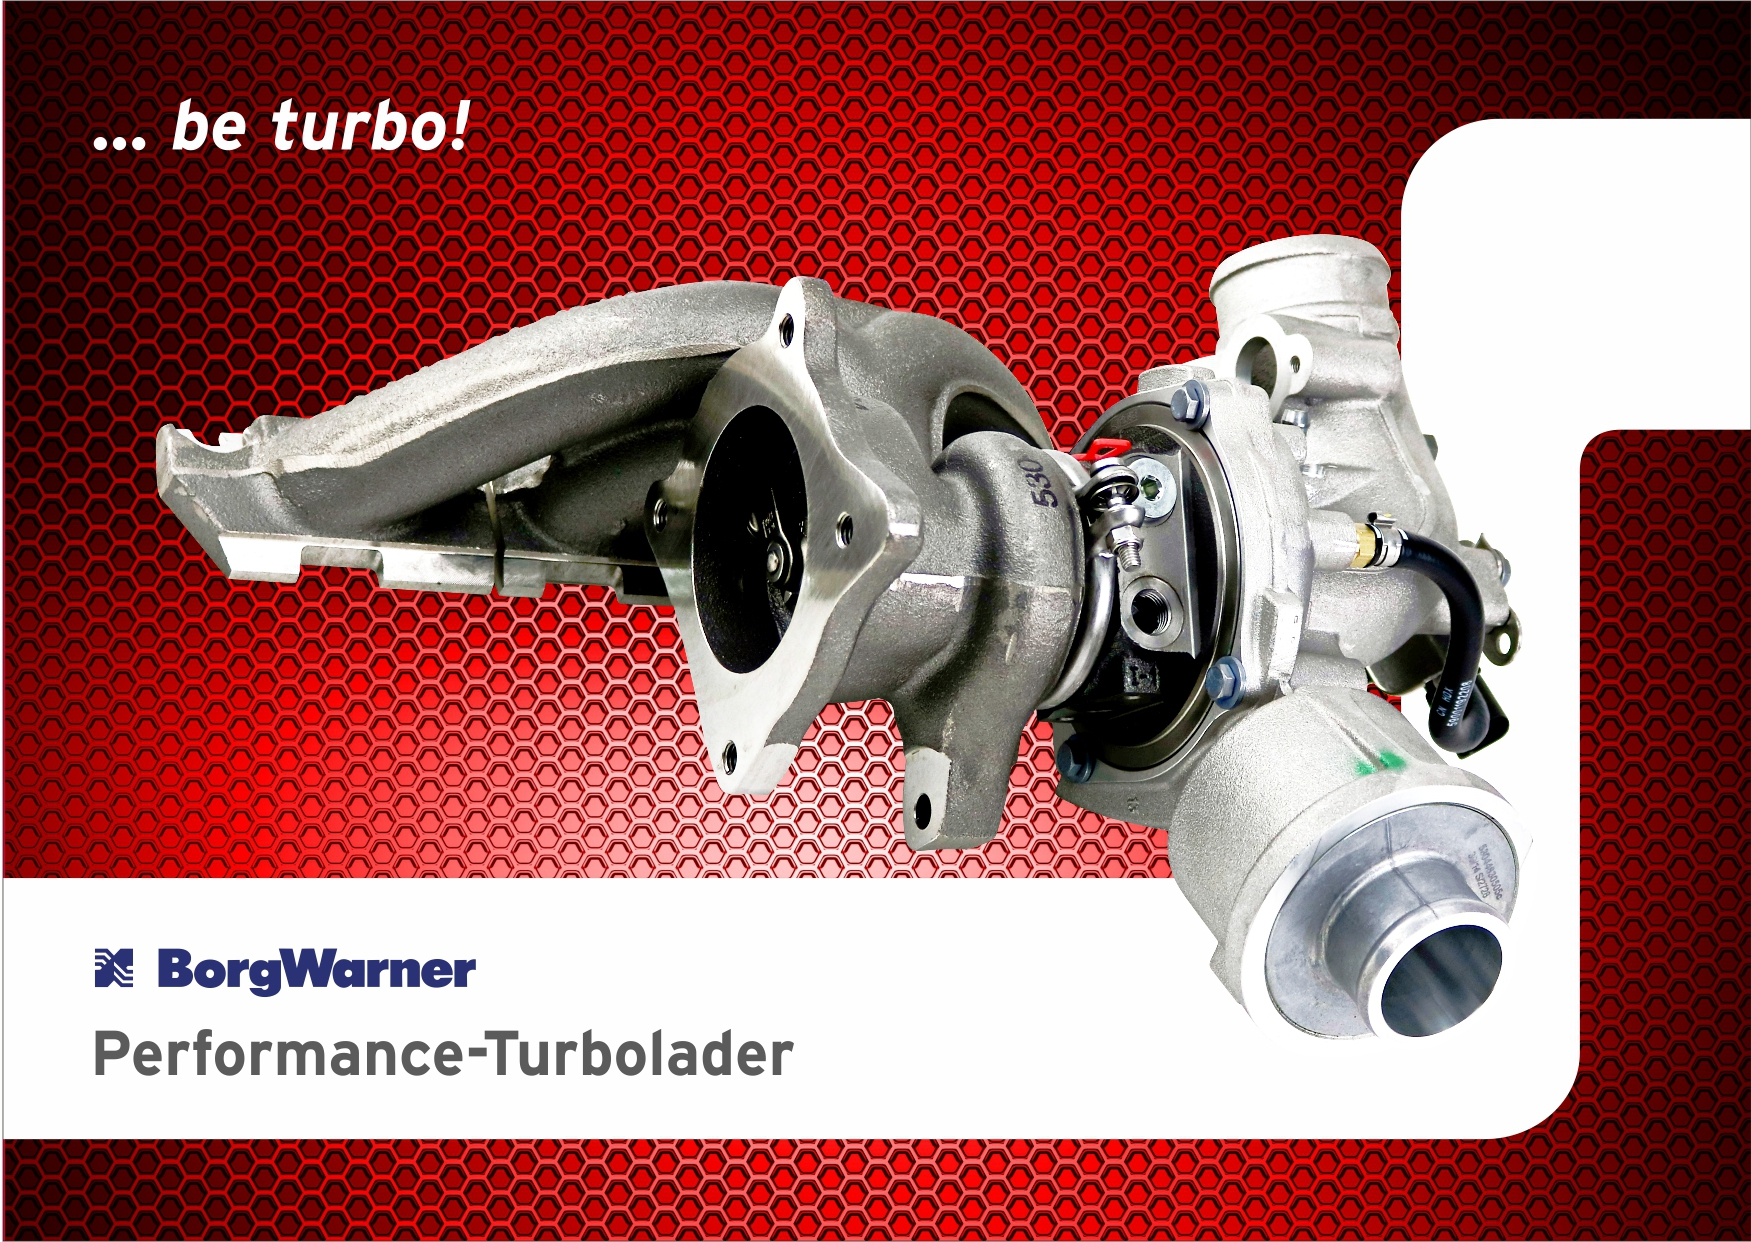 BorgWarner Performance-Turbolader von BE TURBO